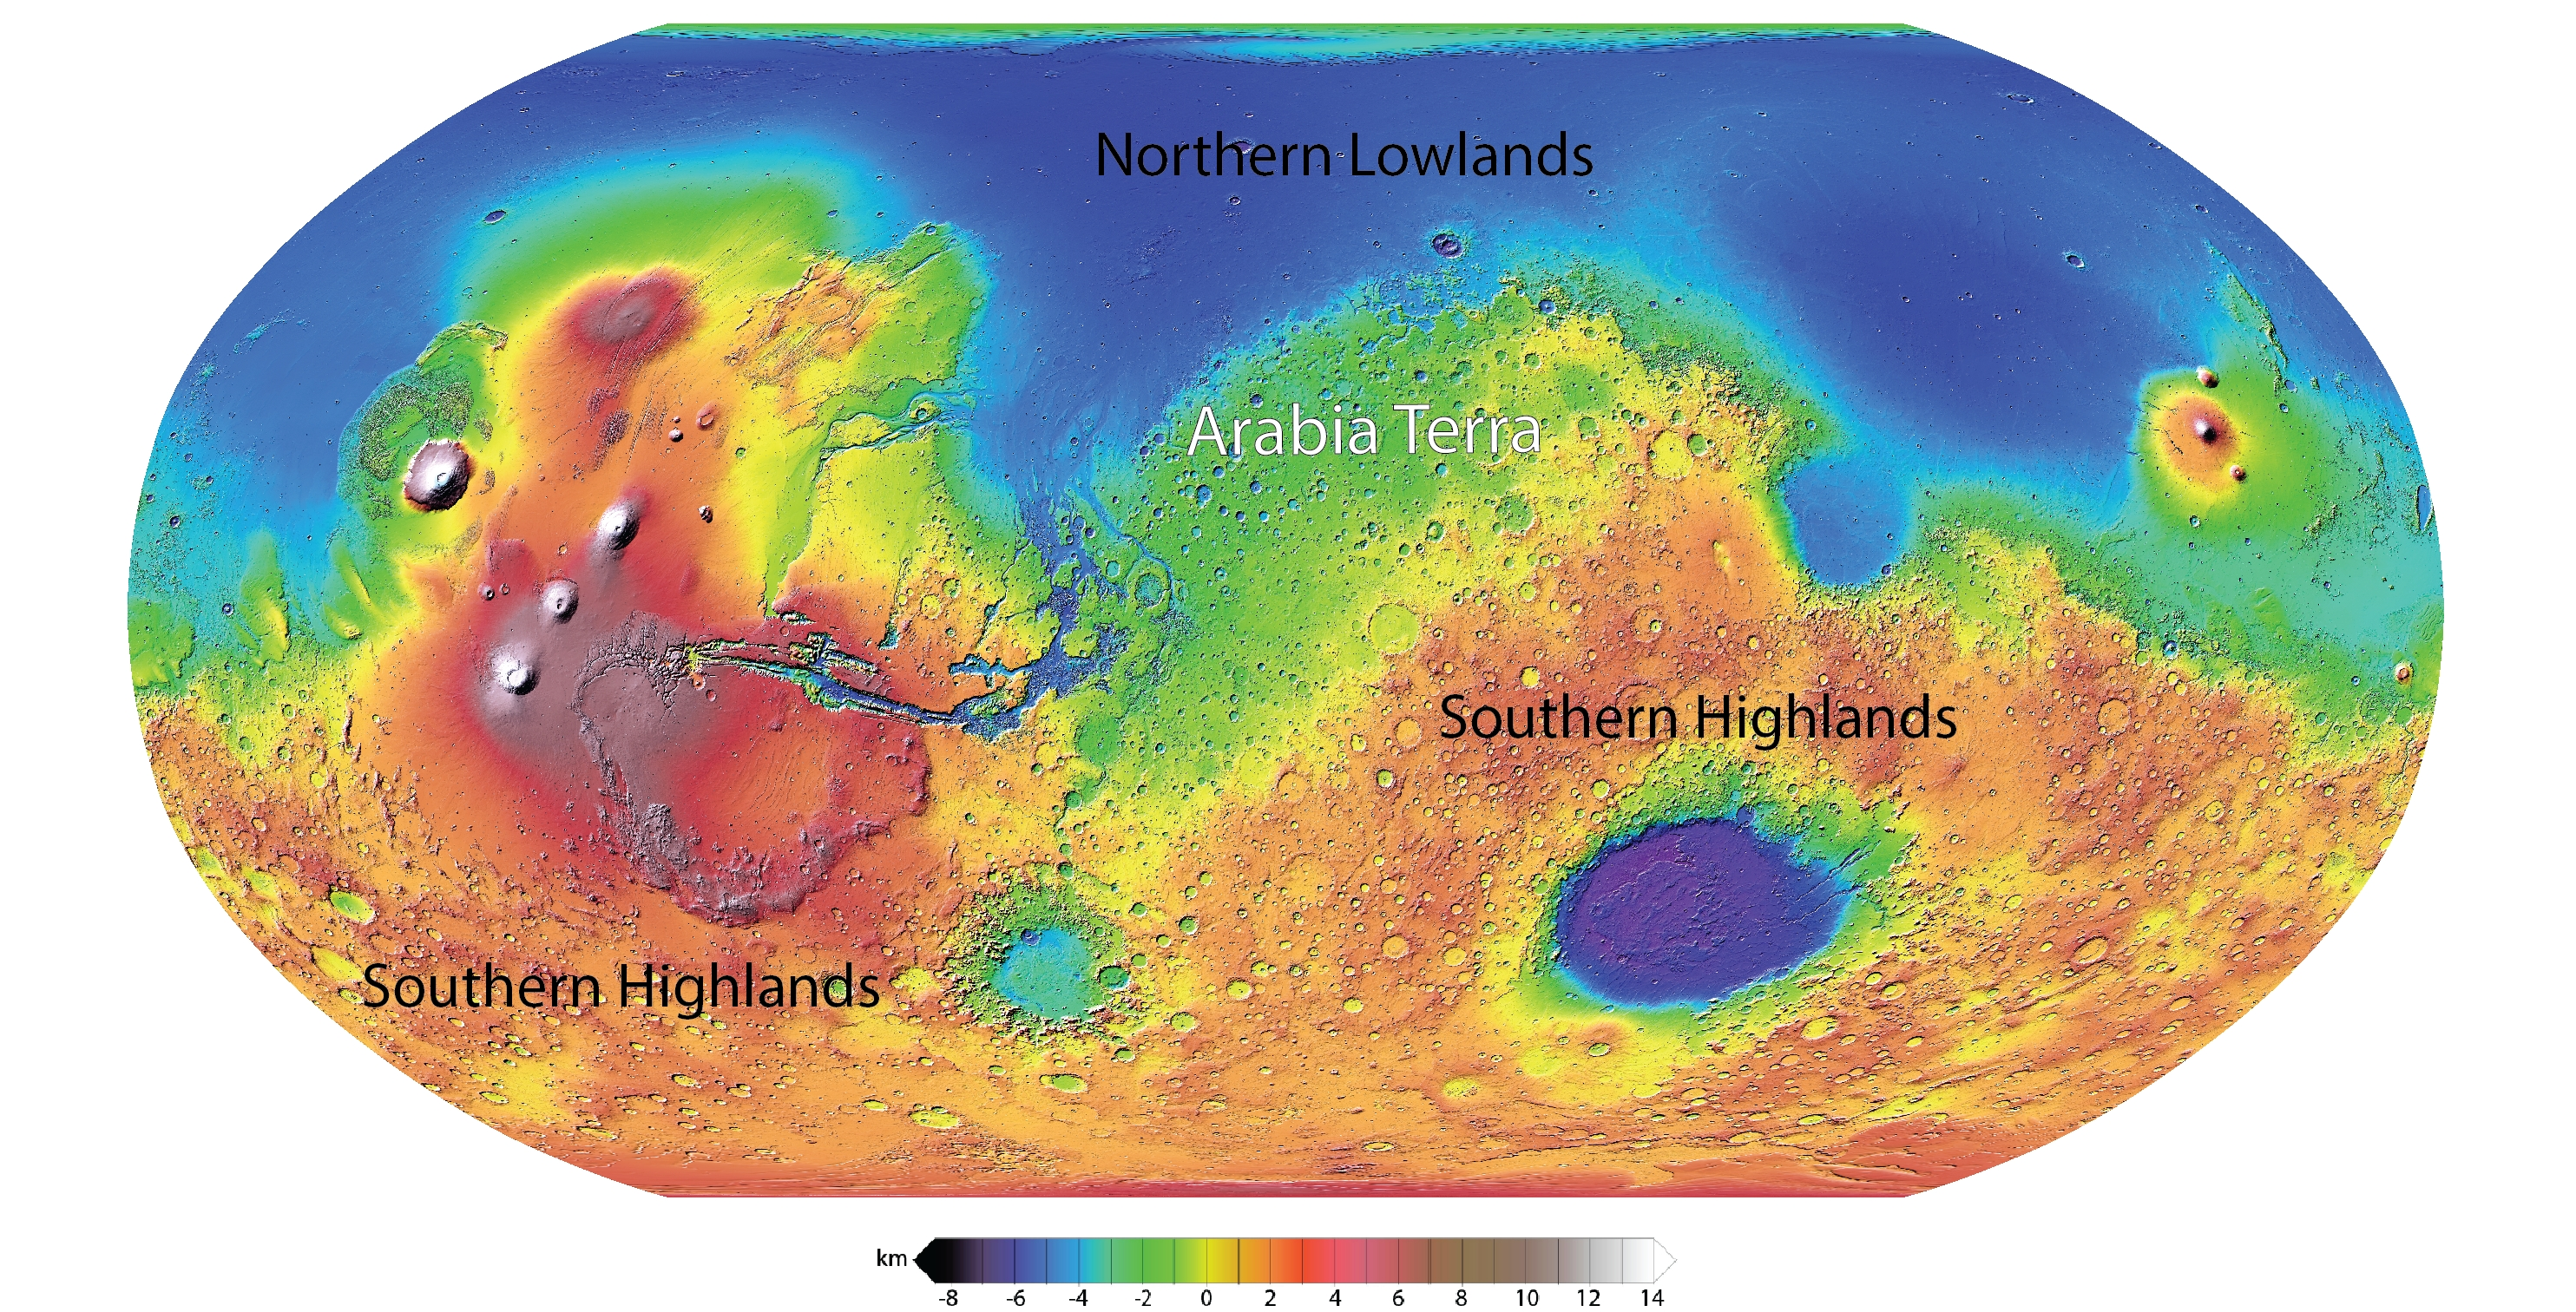 Terra Earth Map.Unraveling A Martian Enigma The Hidden Rivers Of Arabia Terra The